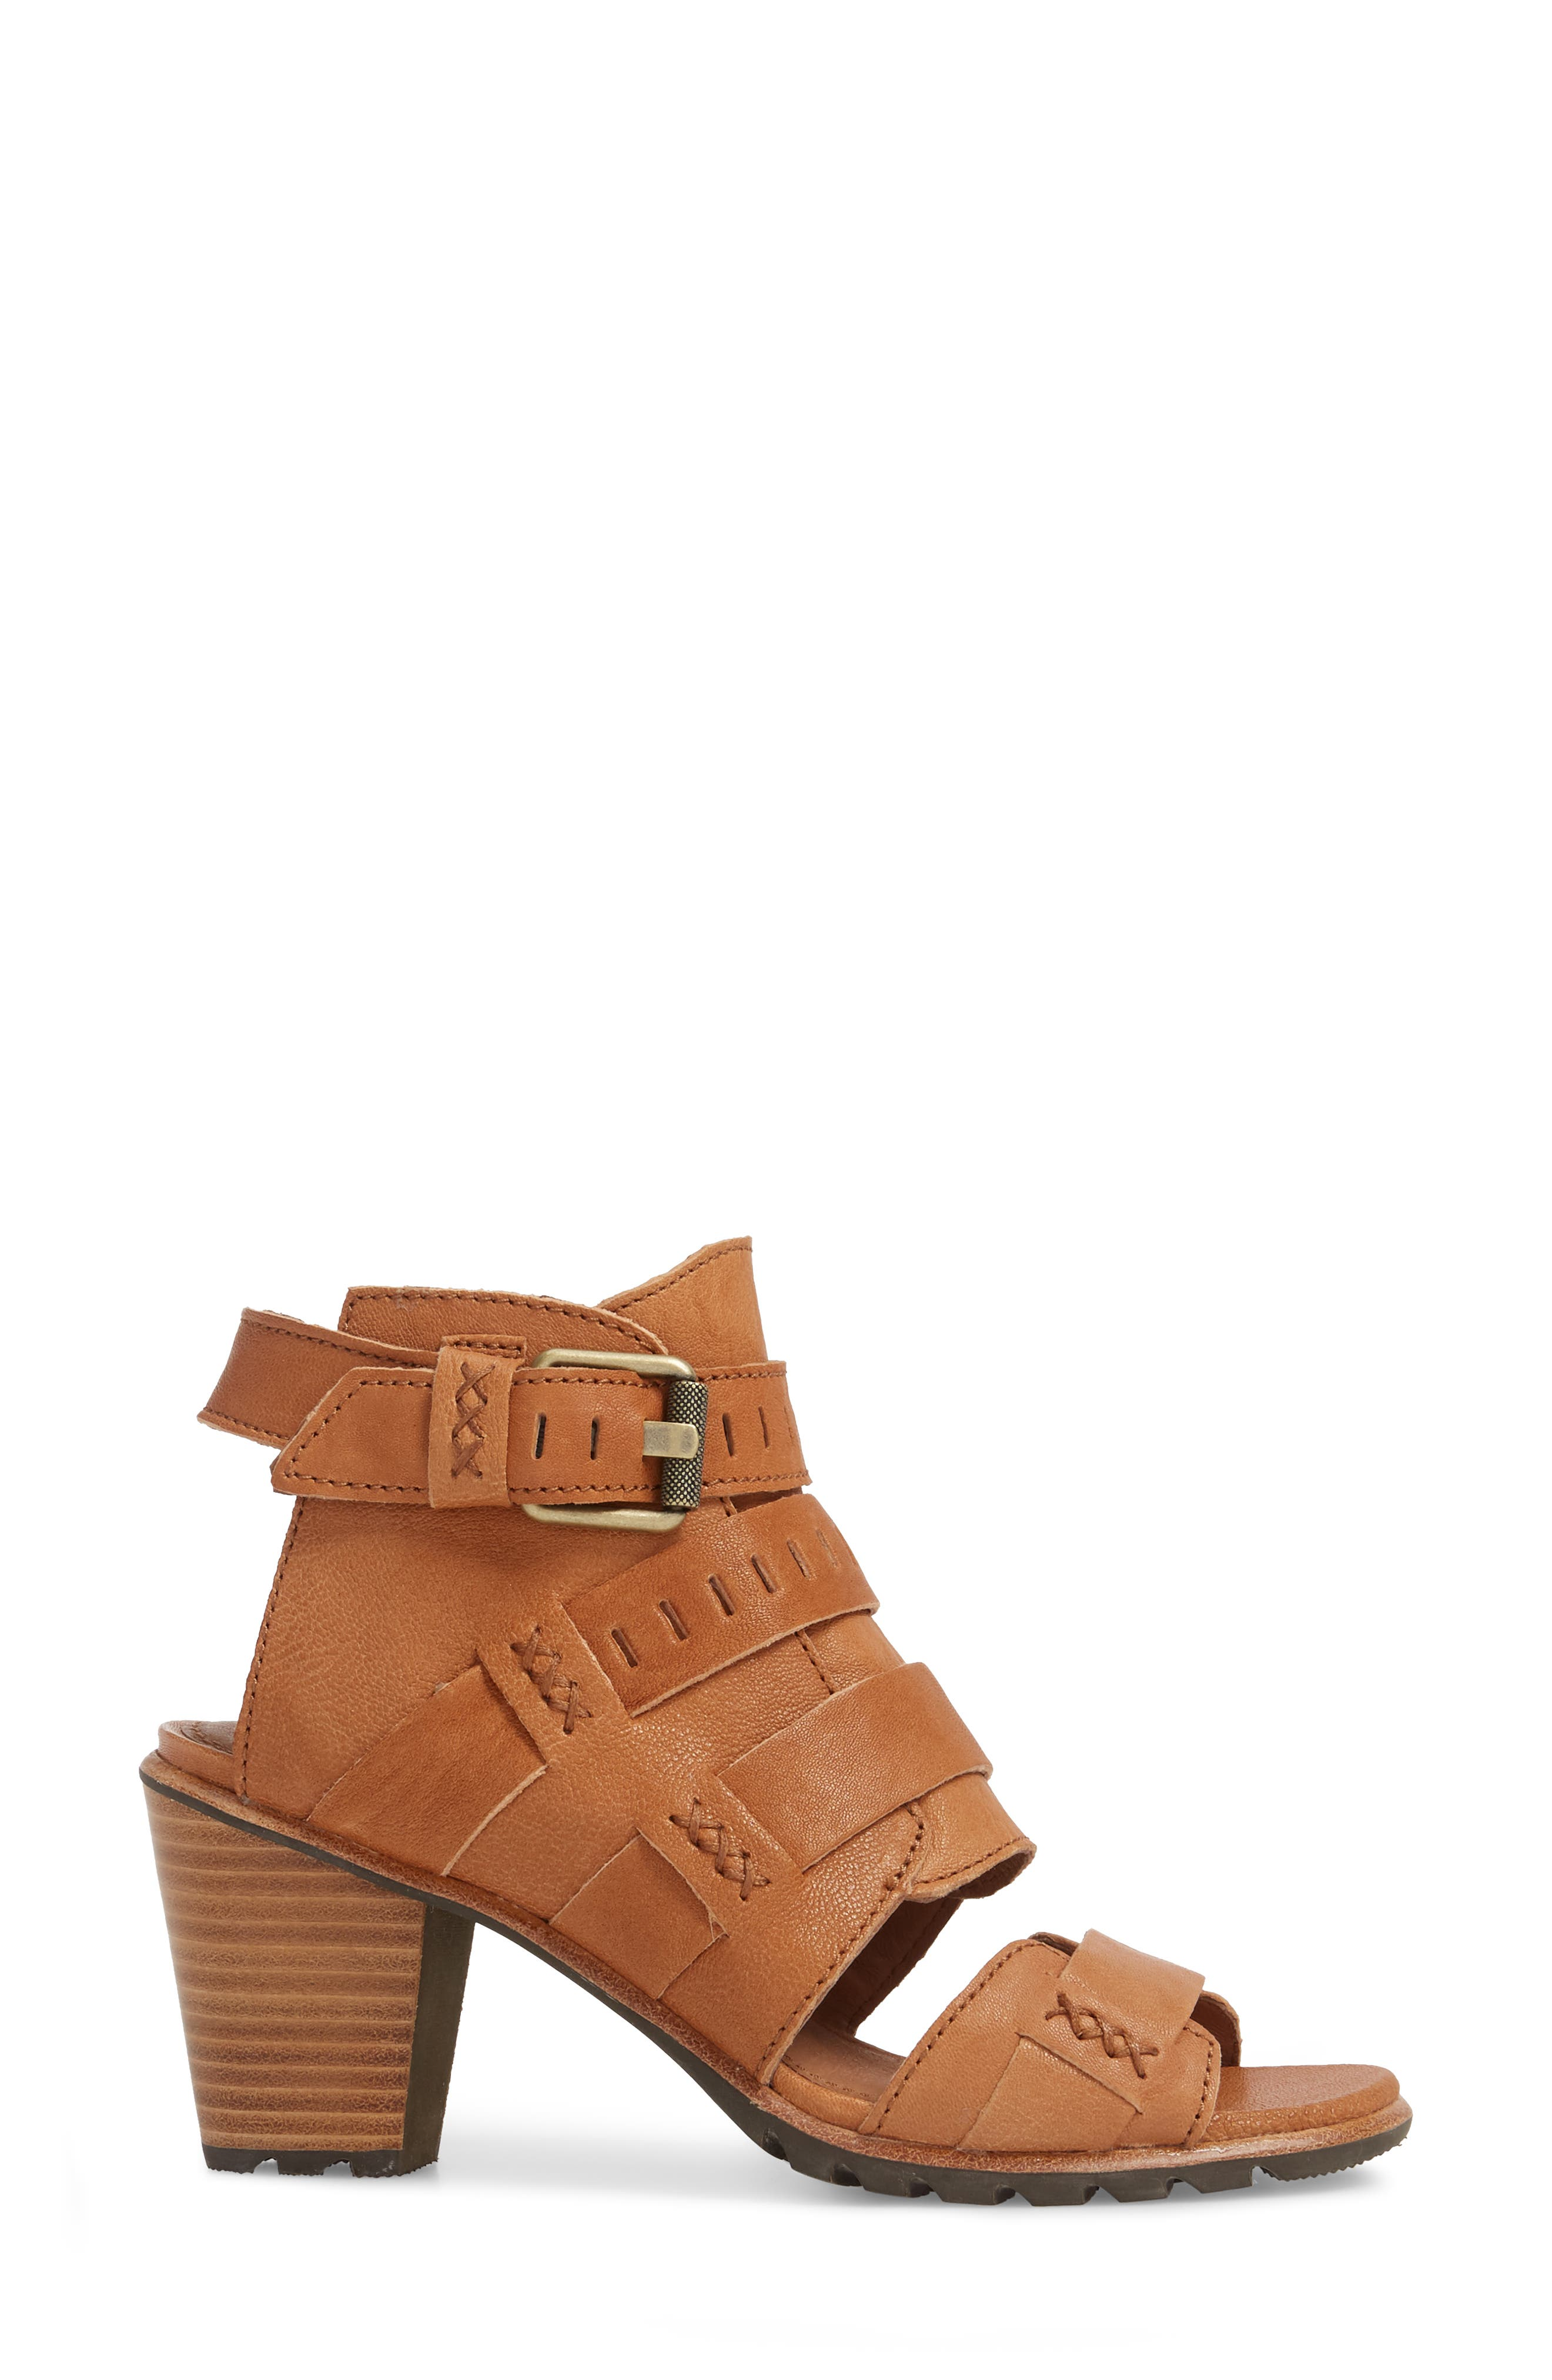 Nadia Buckle Bootie,                             Alternate thumbnail 3, color,                             Camel Brown